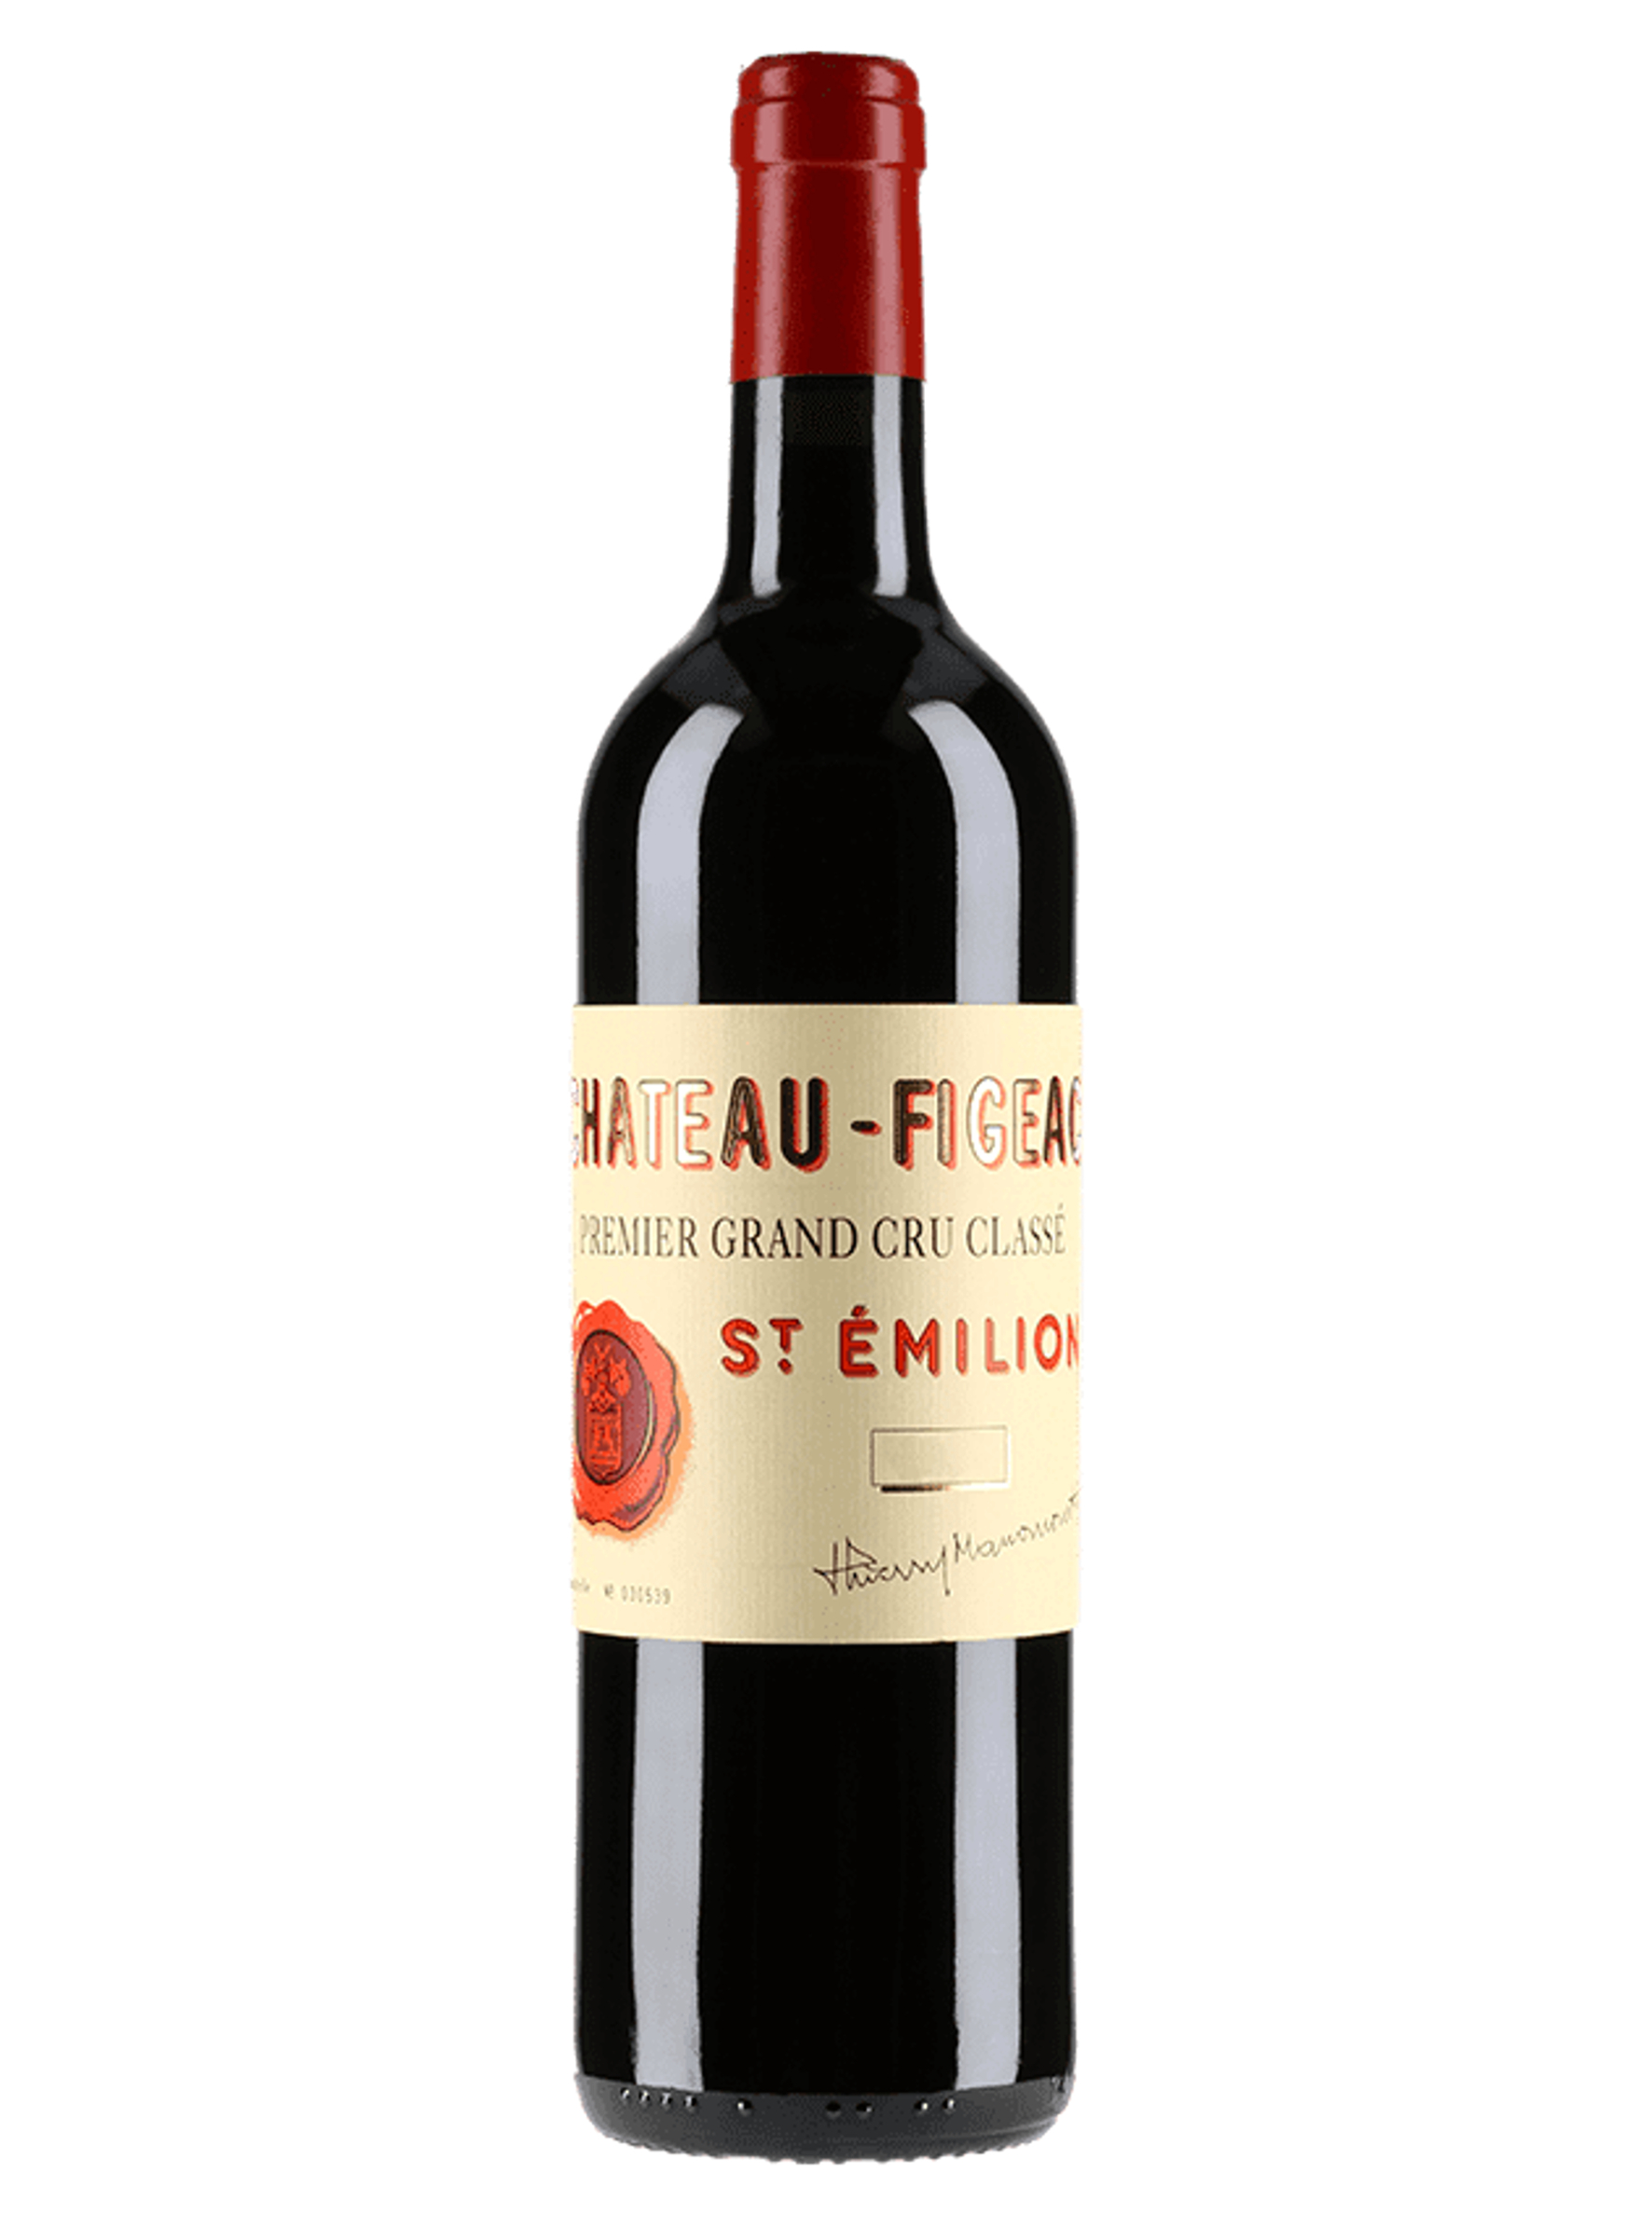 chateaufigeac2000_1